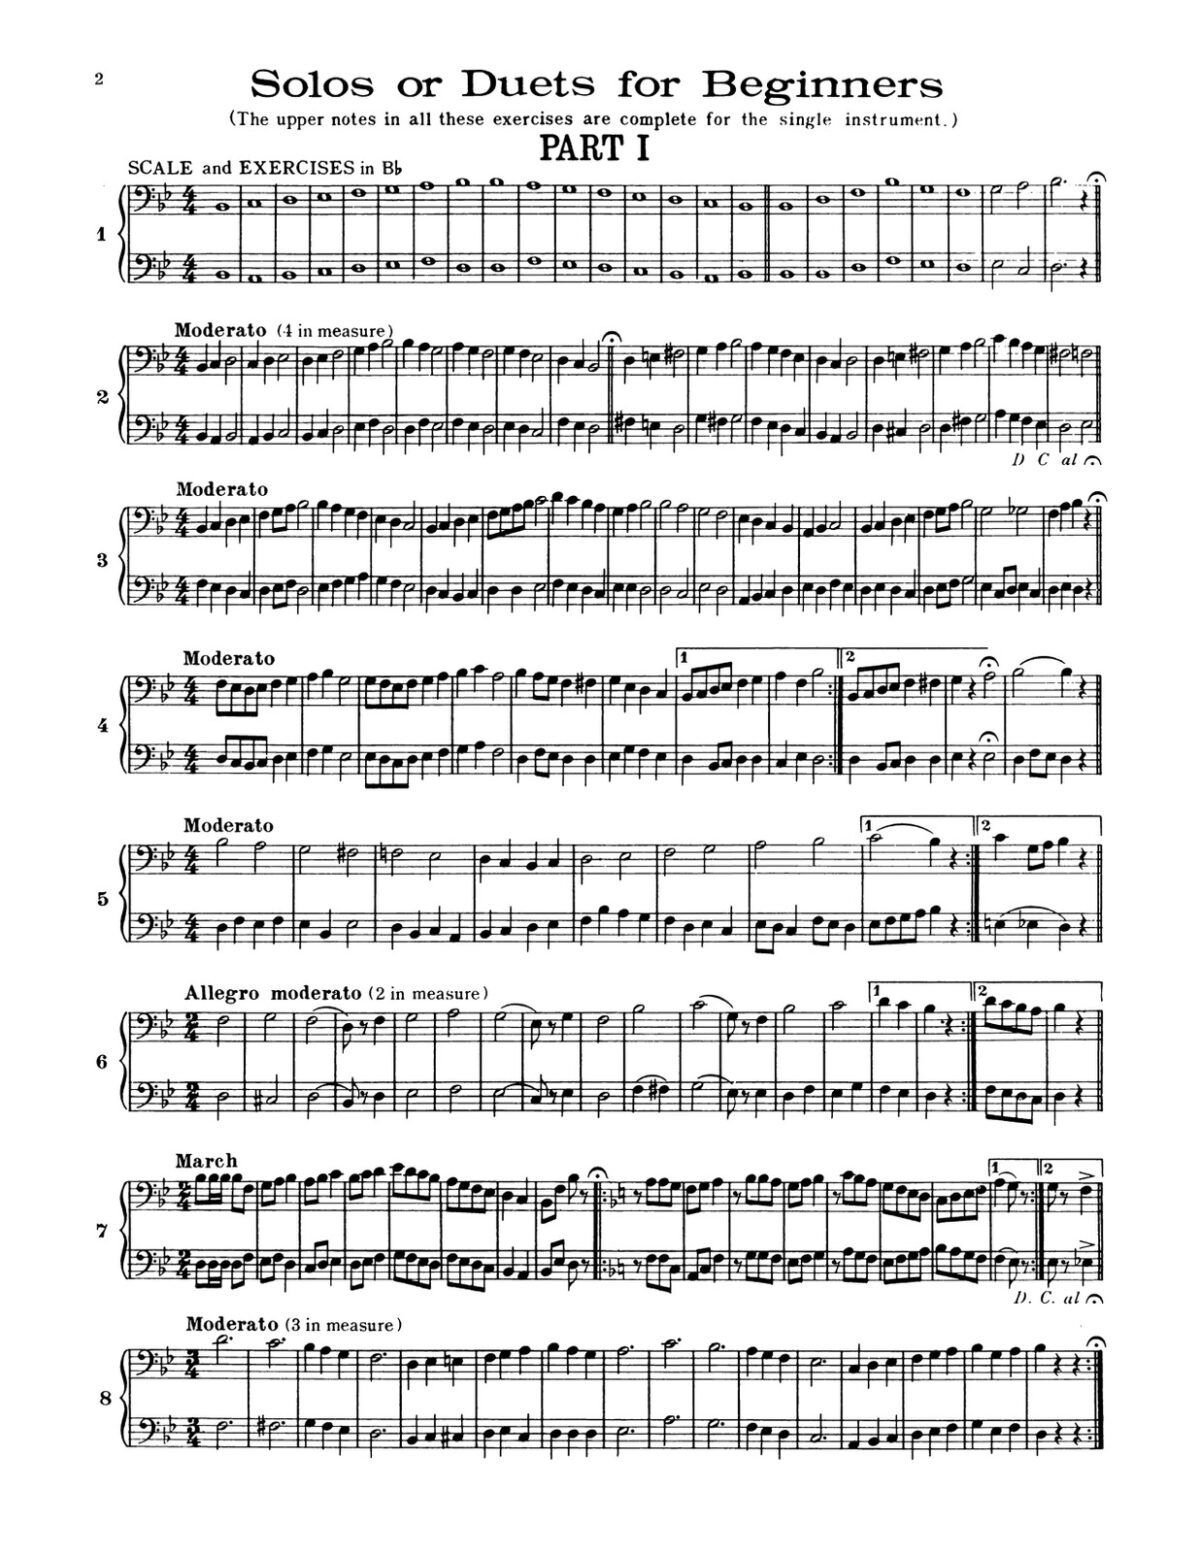 Amsden, Celebrated Practice Duets Bass Clef-p06